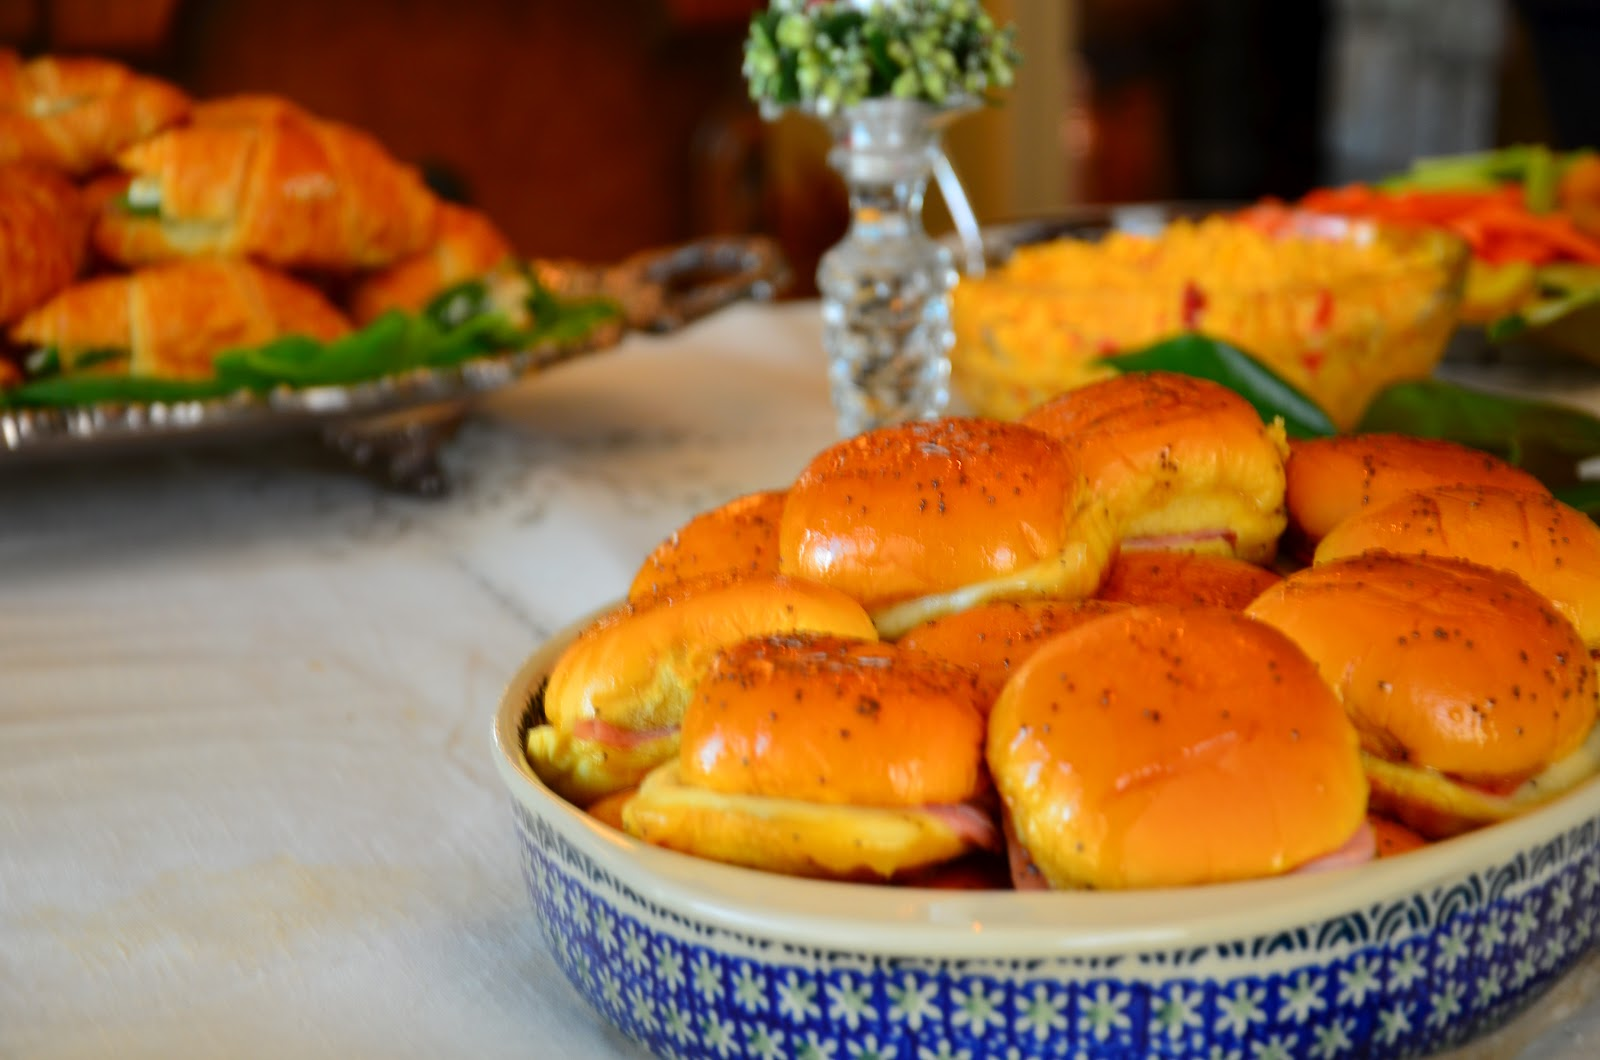 Kirsten's Cooking: Ham and Cheese Sticky Bun Sandwiches